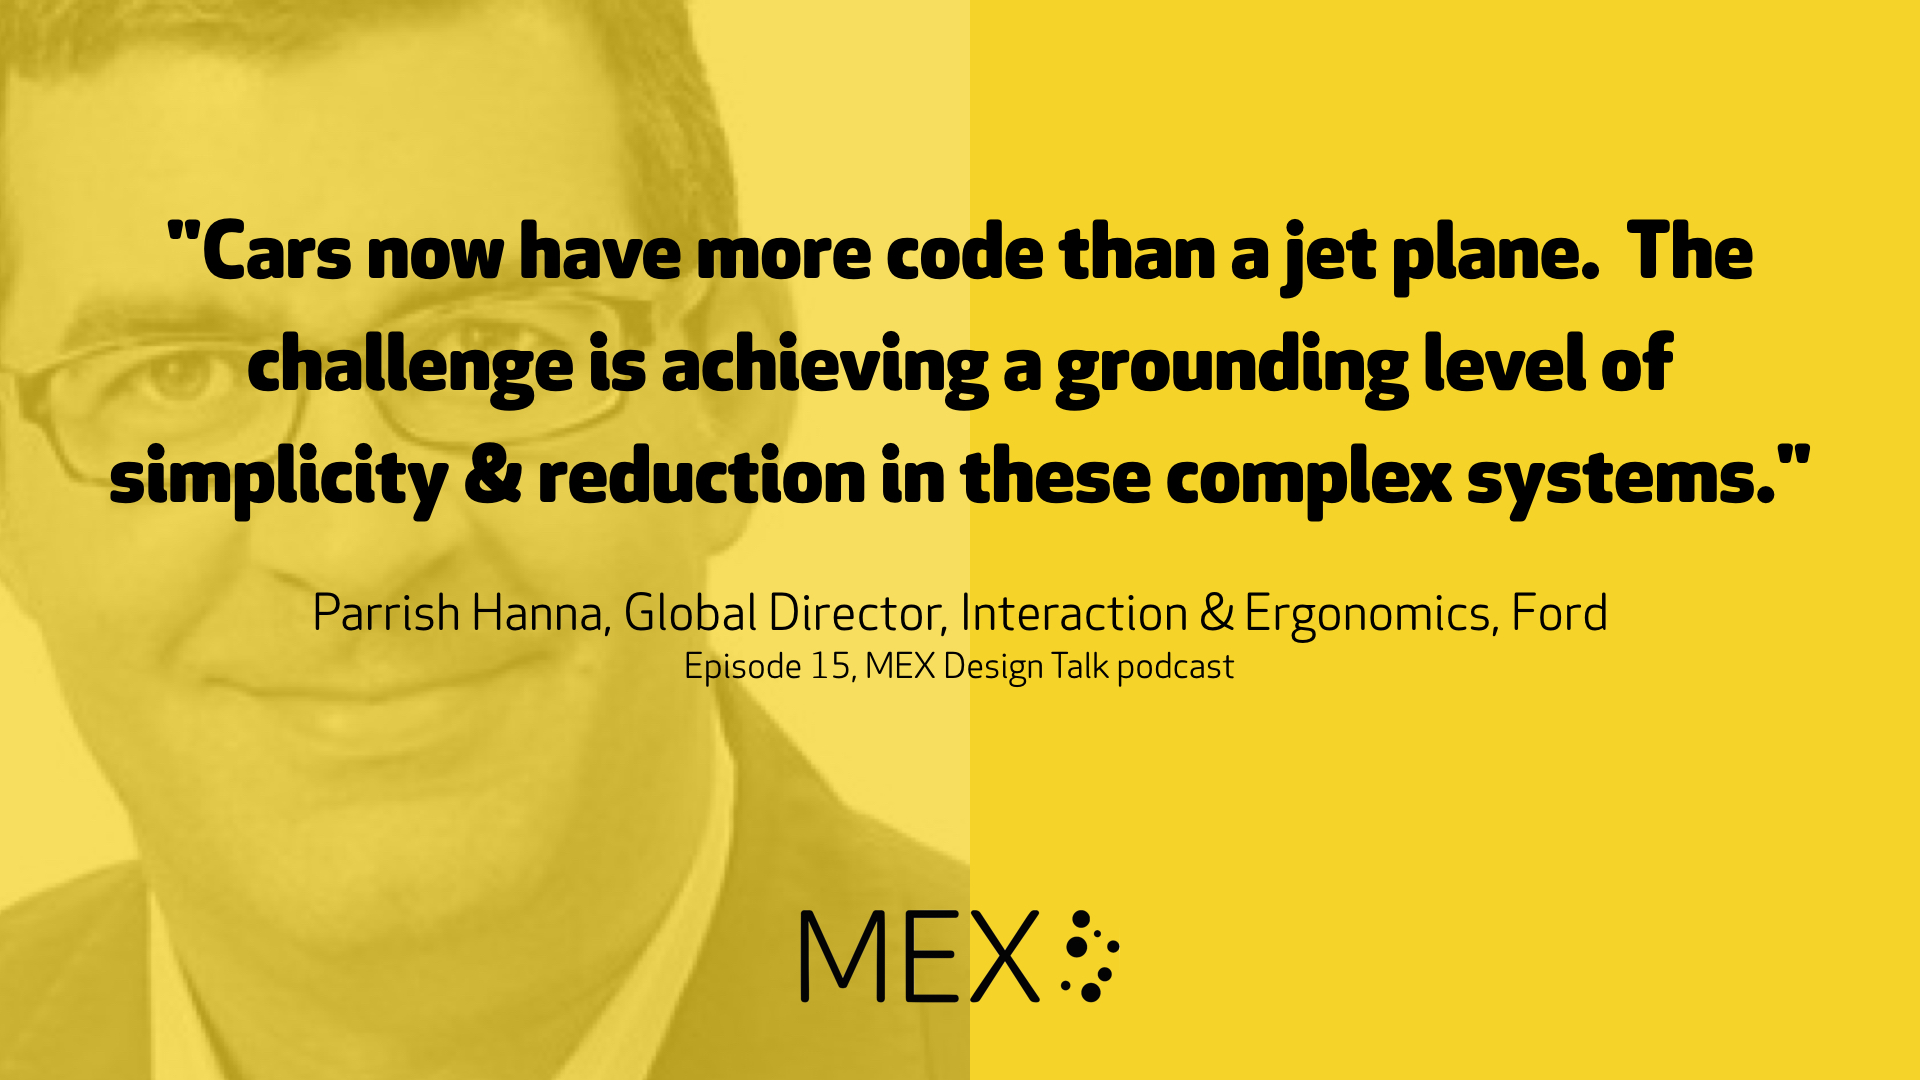 """Cars now have more code than a jet plane. The challenge is achieving a grounding level of simplicity & reduction in these complex systems."" Parrish Hanna, Global Director, Interaction & Ergonomics, Ford -- Episode 15, MEX Design Talk podcast"